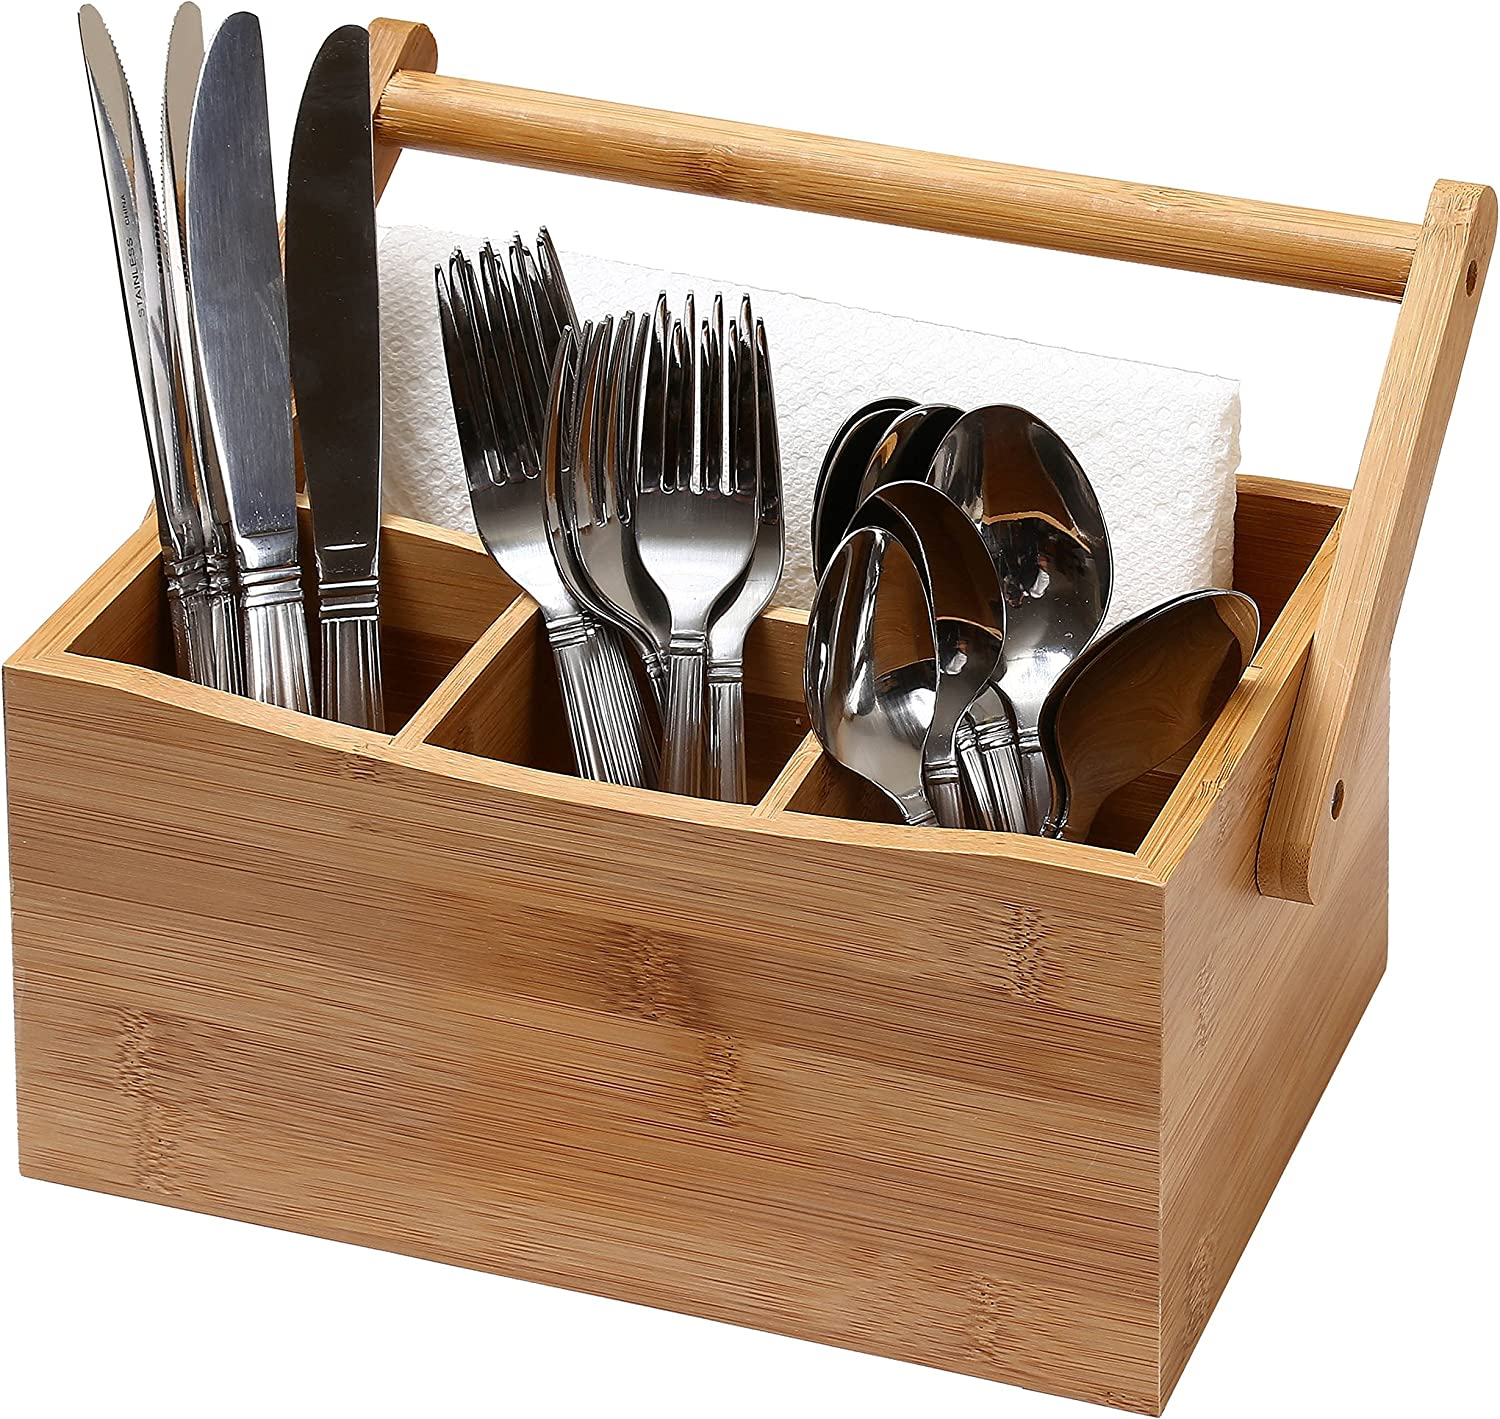 YBM Home Bamboo Flatware Utensil Caddy with Napkin Holder and Handle, Wood Picnic Basket for Kitchen and Camping Trip, 336